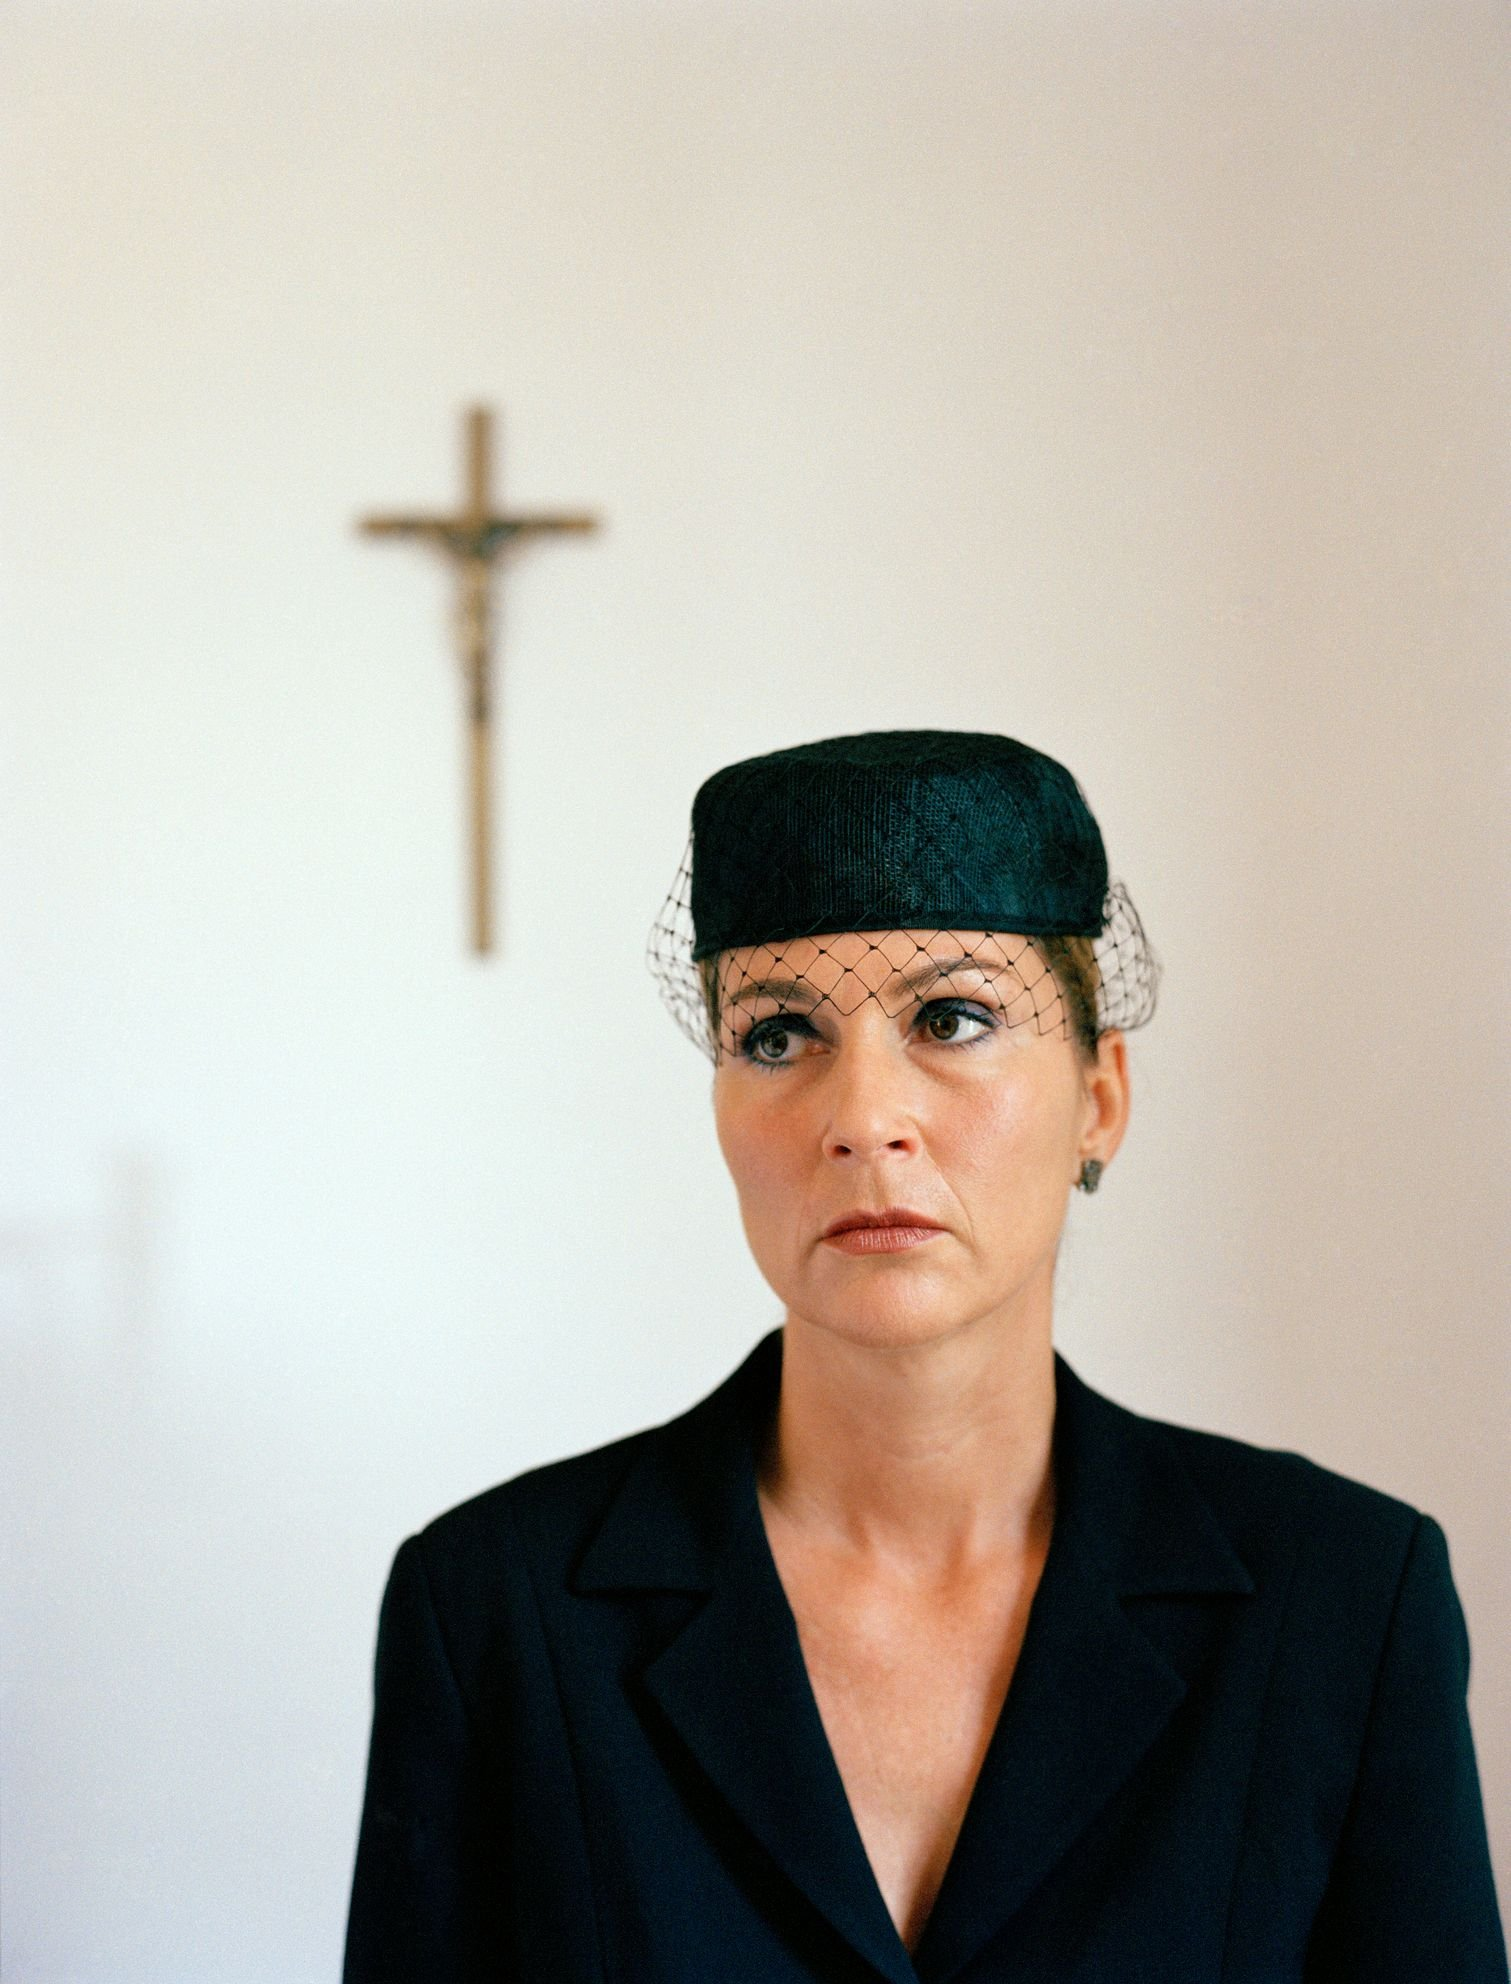 Portrait of a woman dressed in black at a church.   Quelle: Stock-Fotografie